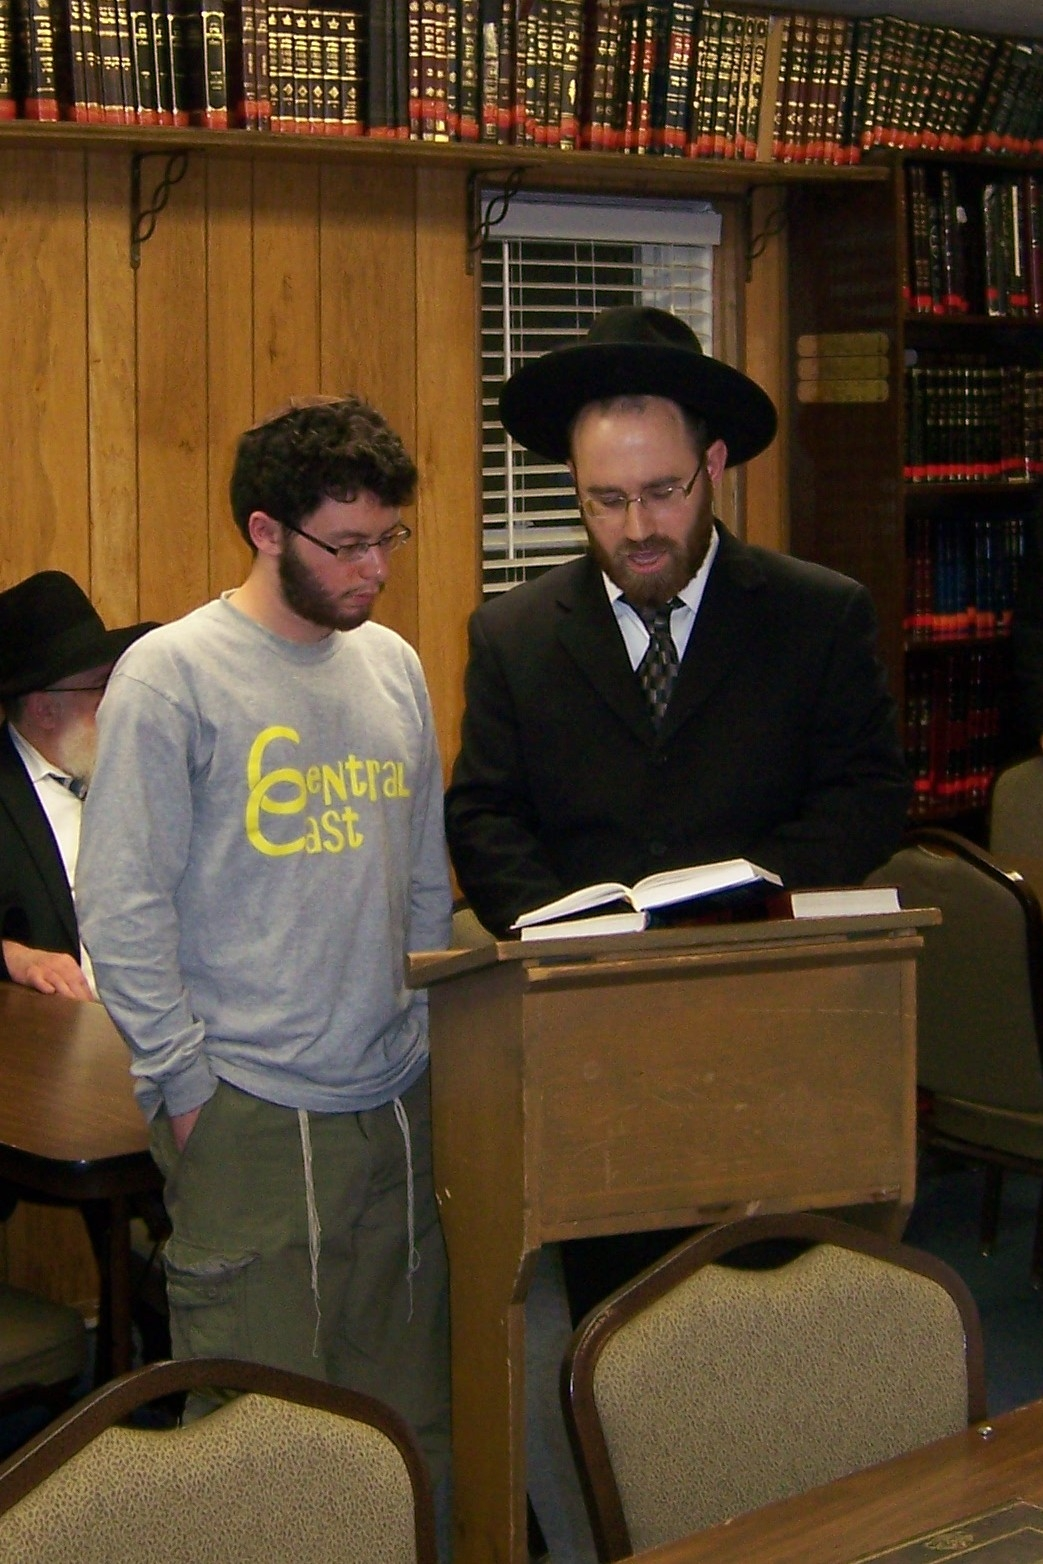 mr-shaya-shtern-and-jonah-rubenstein-making-a-siyum-jpg